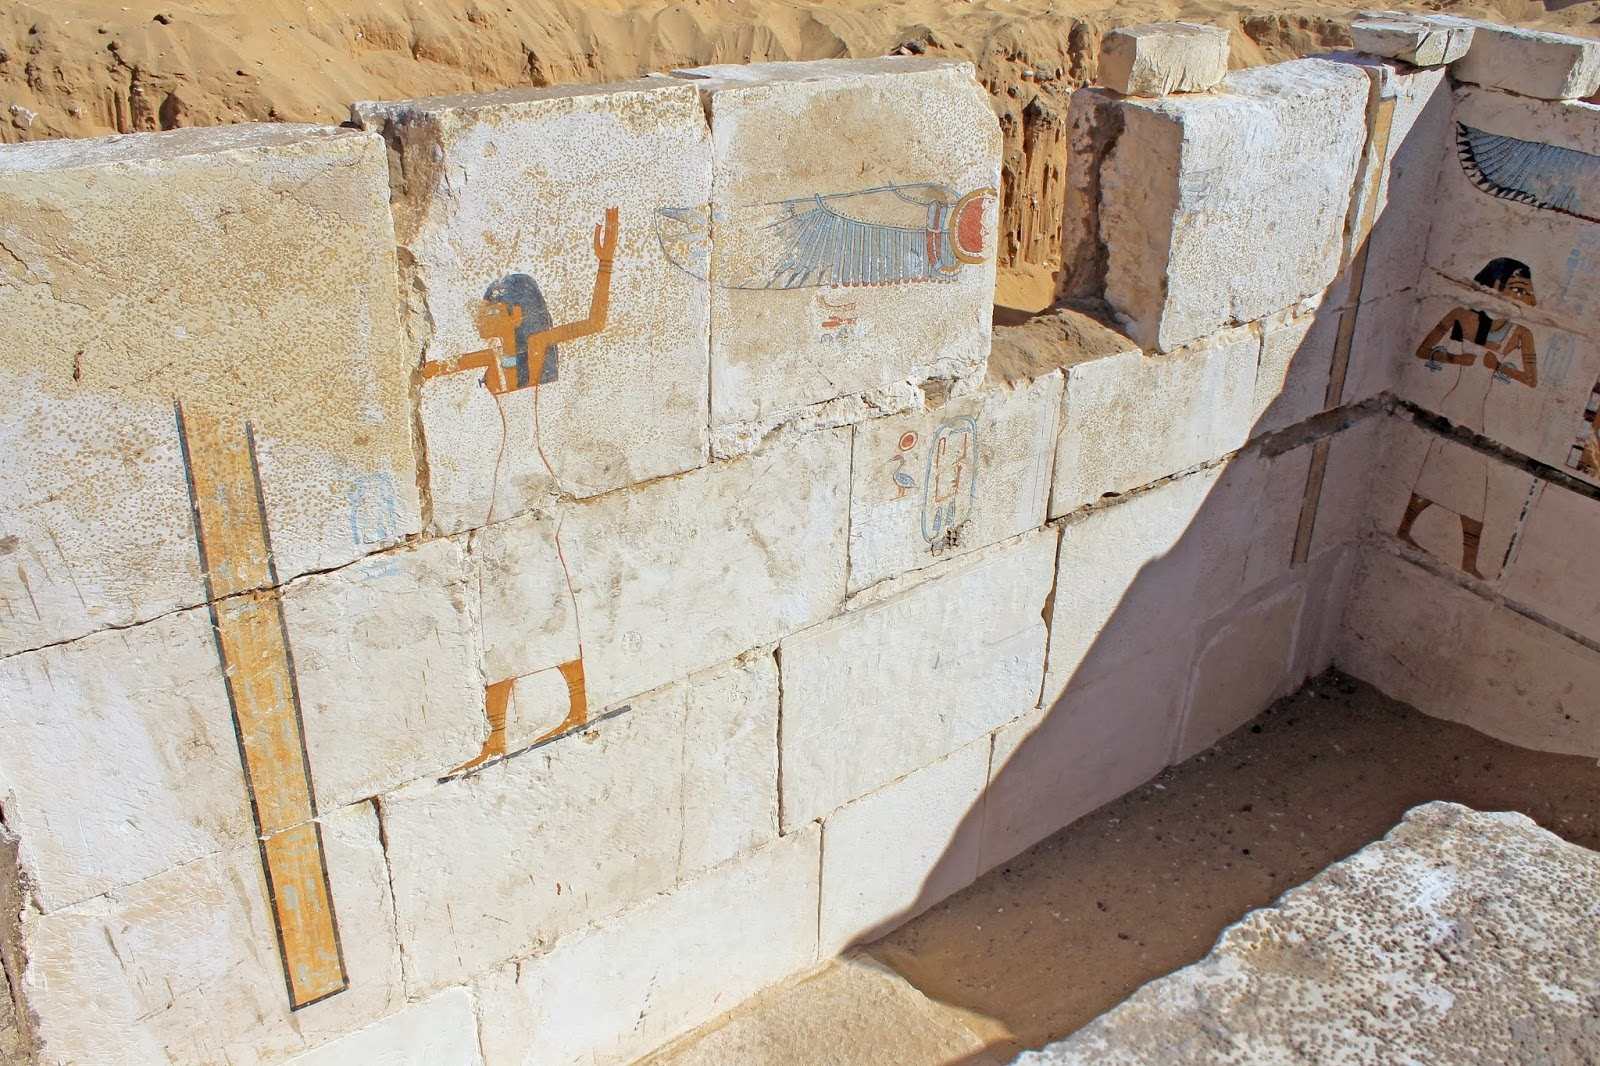 archaeology of south abydos Archaeology journal • excavations abydos, egypt with the recent retirement of david o'connor, the lila acheson wallace professor of egyptian art and archaeology, it.